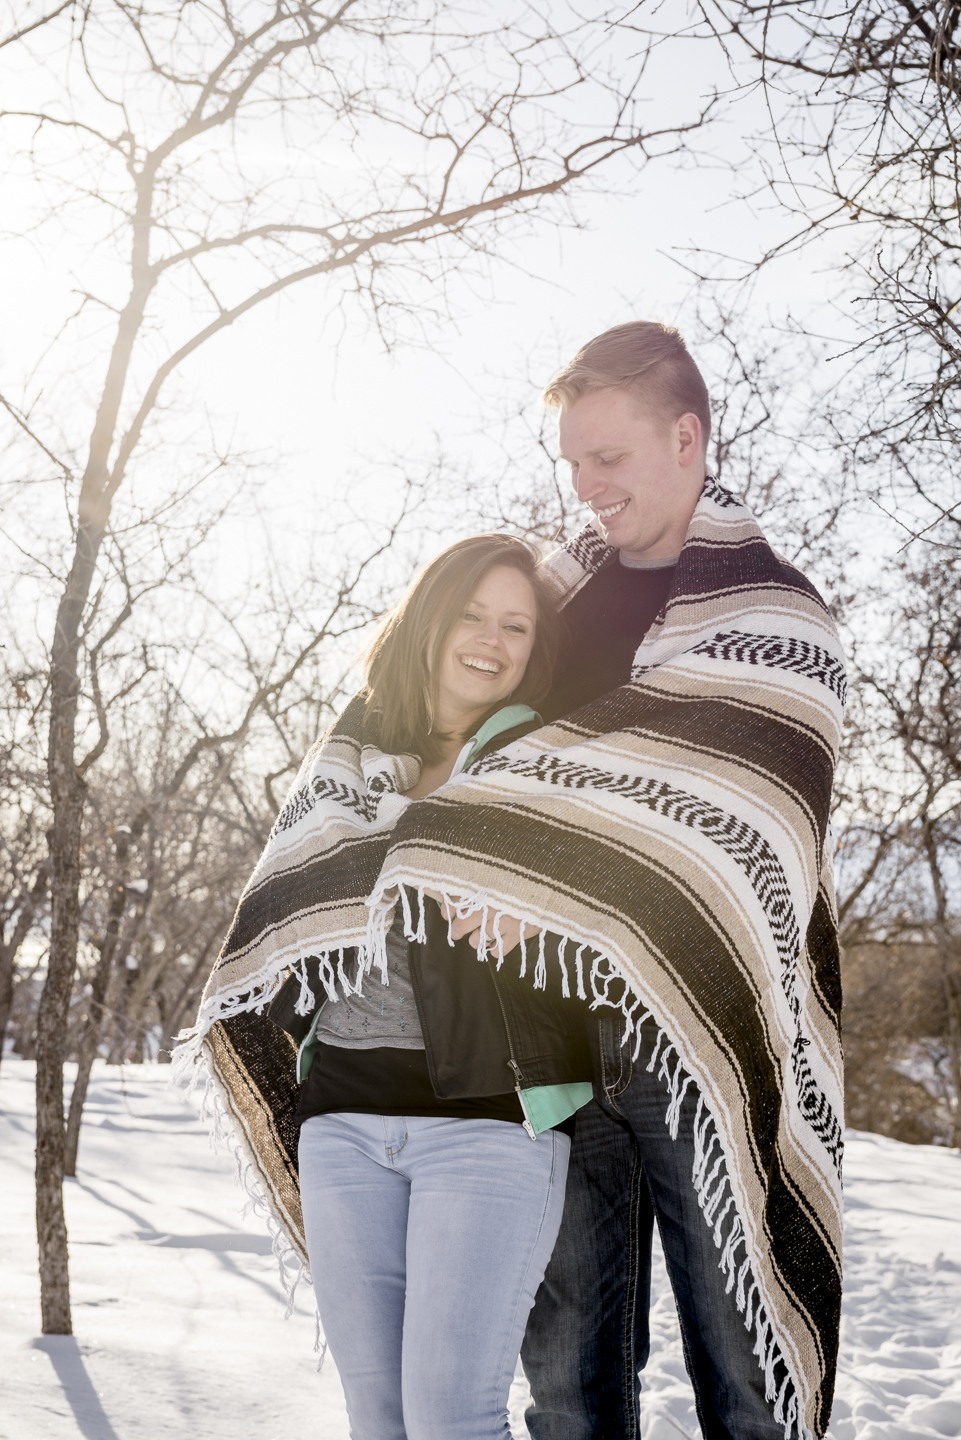 savage_couple_portrait_snow_pine_utah_Christin-8.jpg